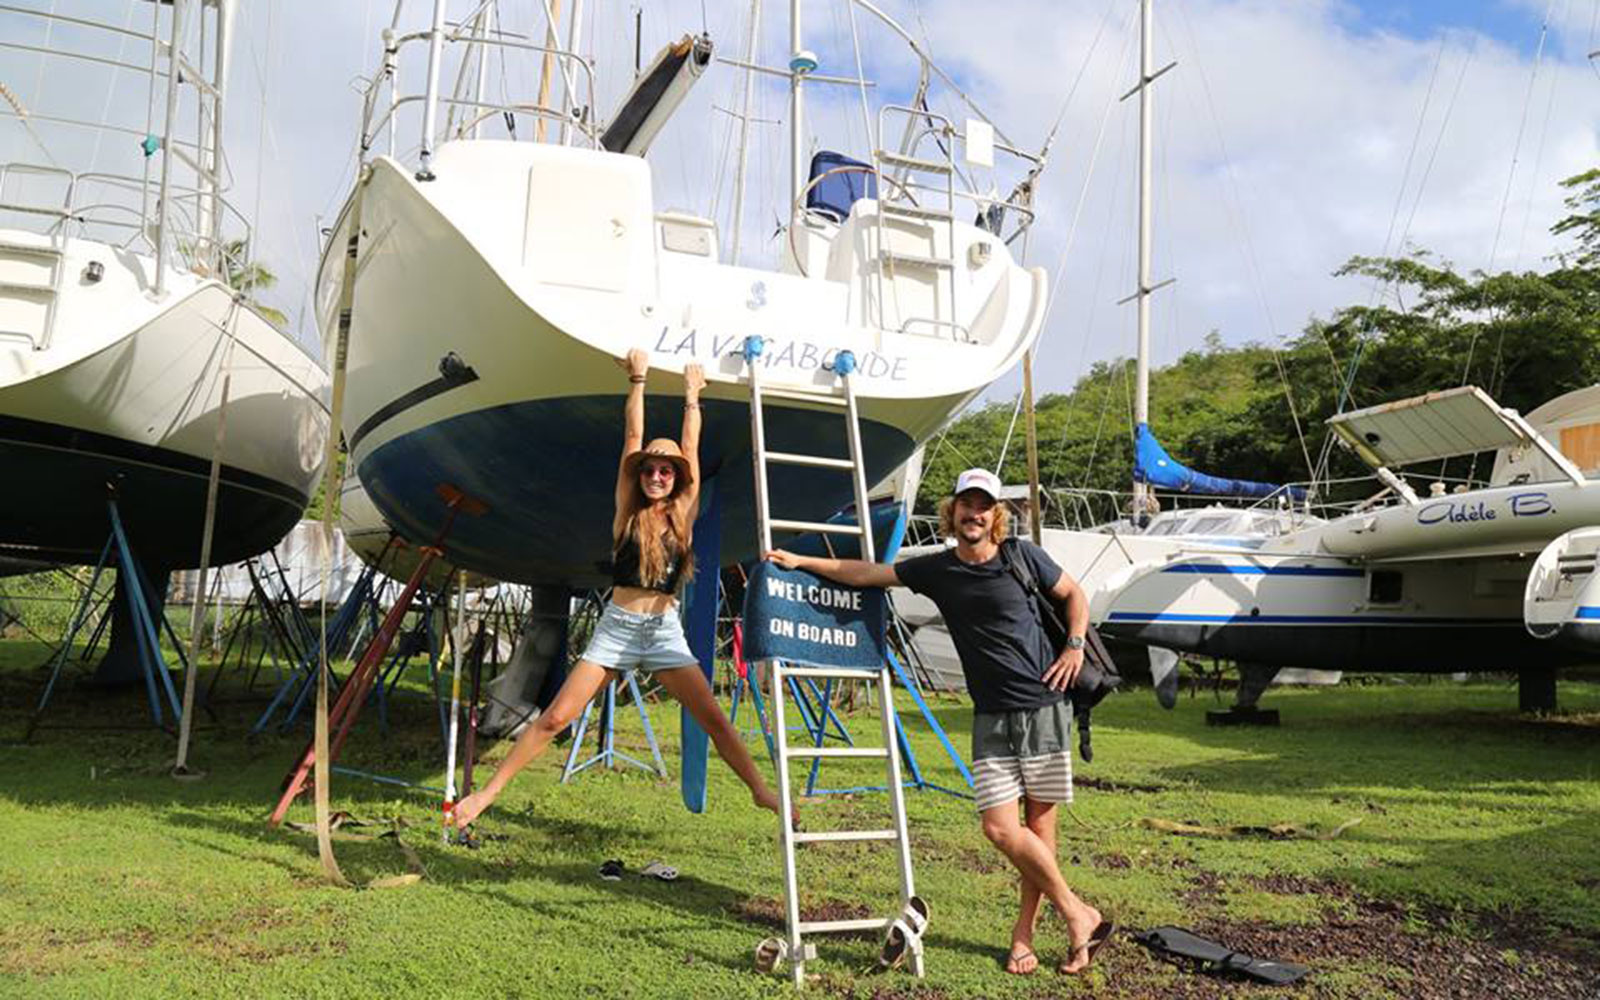 Riley Whitelum Elayna Carausu Couple Travel Sail the World Boat Adventure